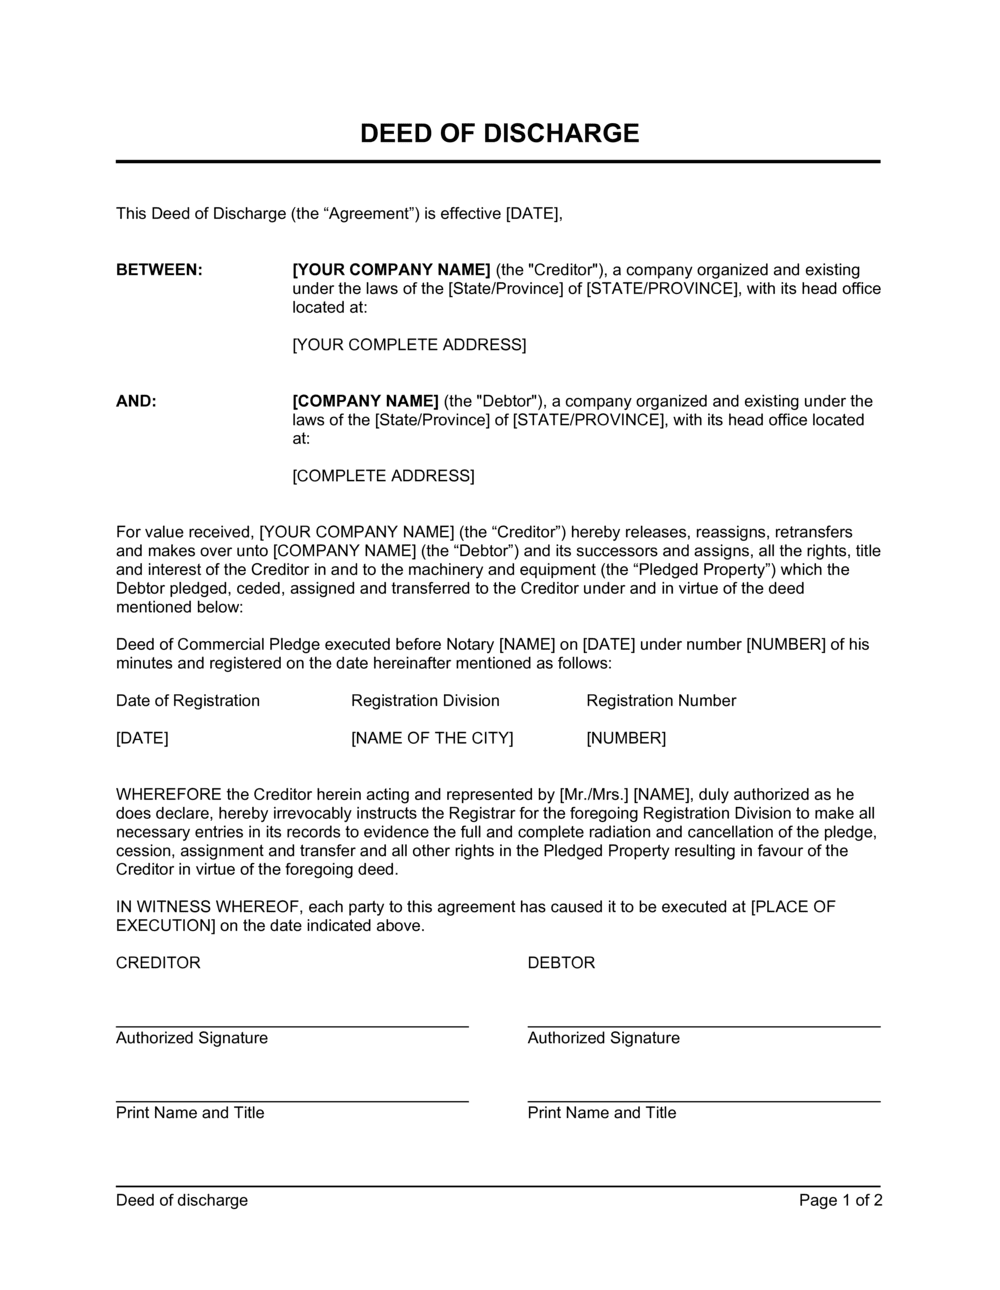 Business-in-a-Box's Deed of Discharge Template